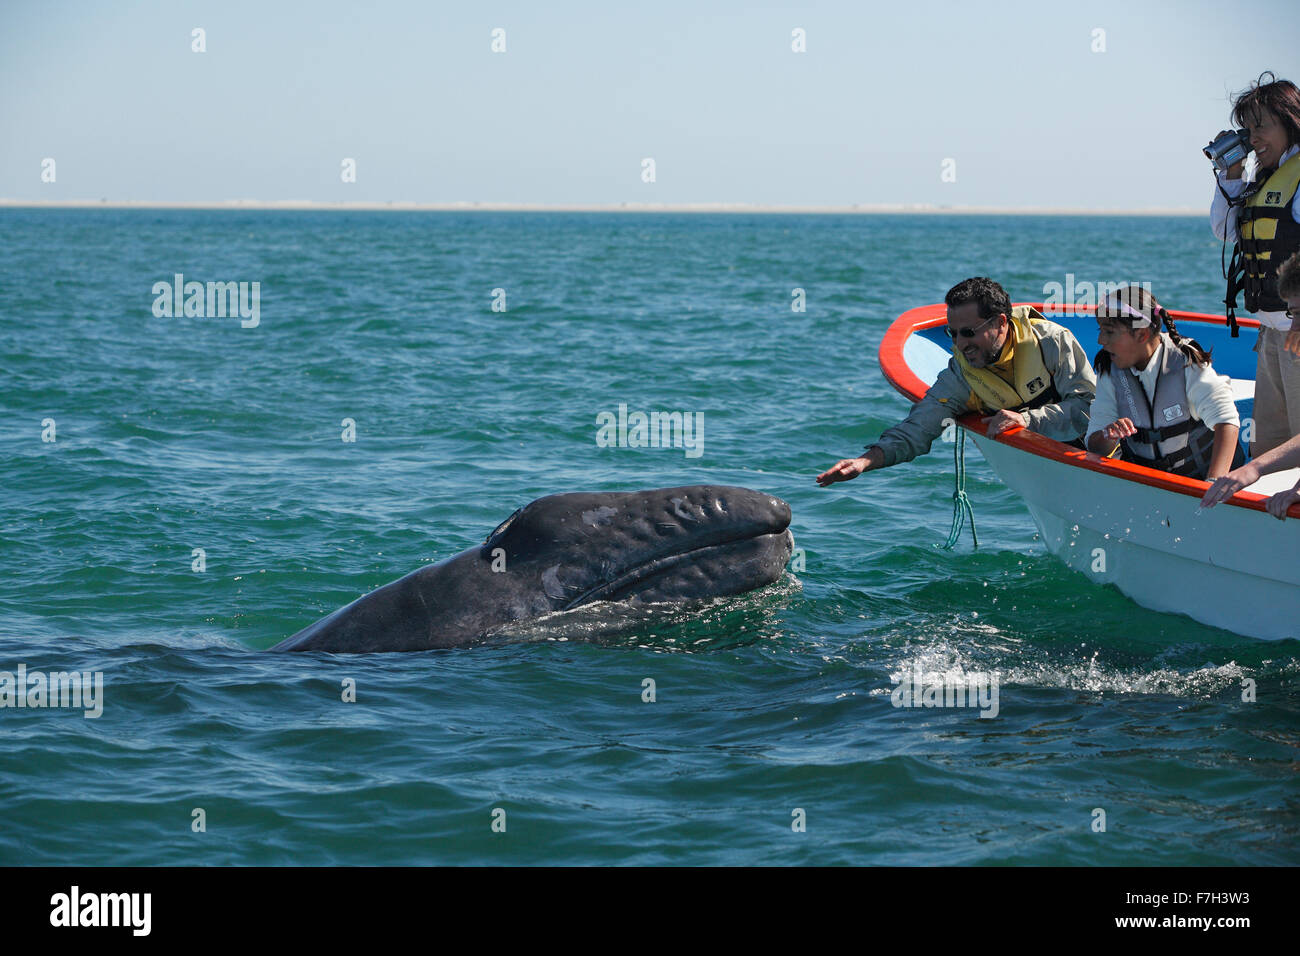 pr5361-D. Gray Whale (Eschrichtius robustus), curious calf approaches boat to accept gentle human touch from family. - Stock Image